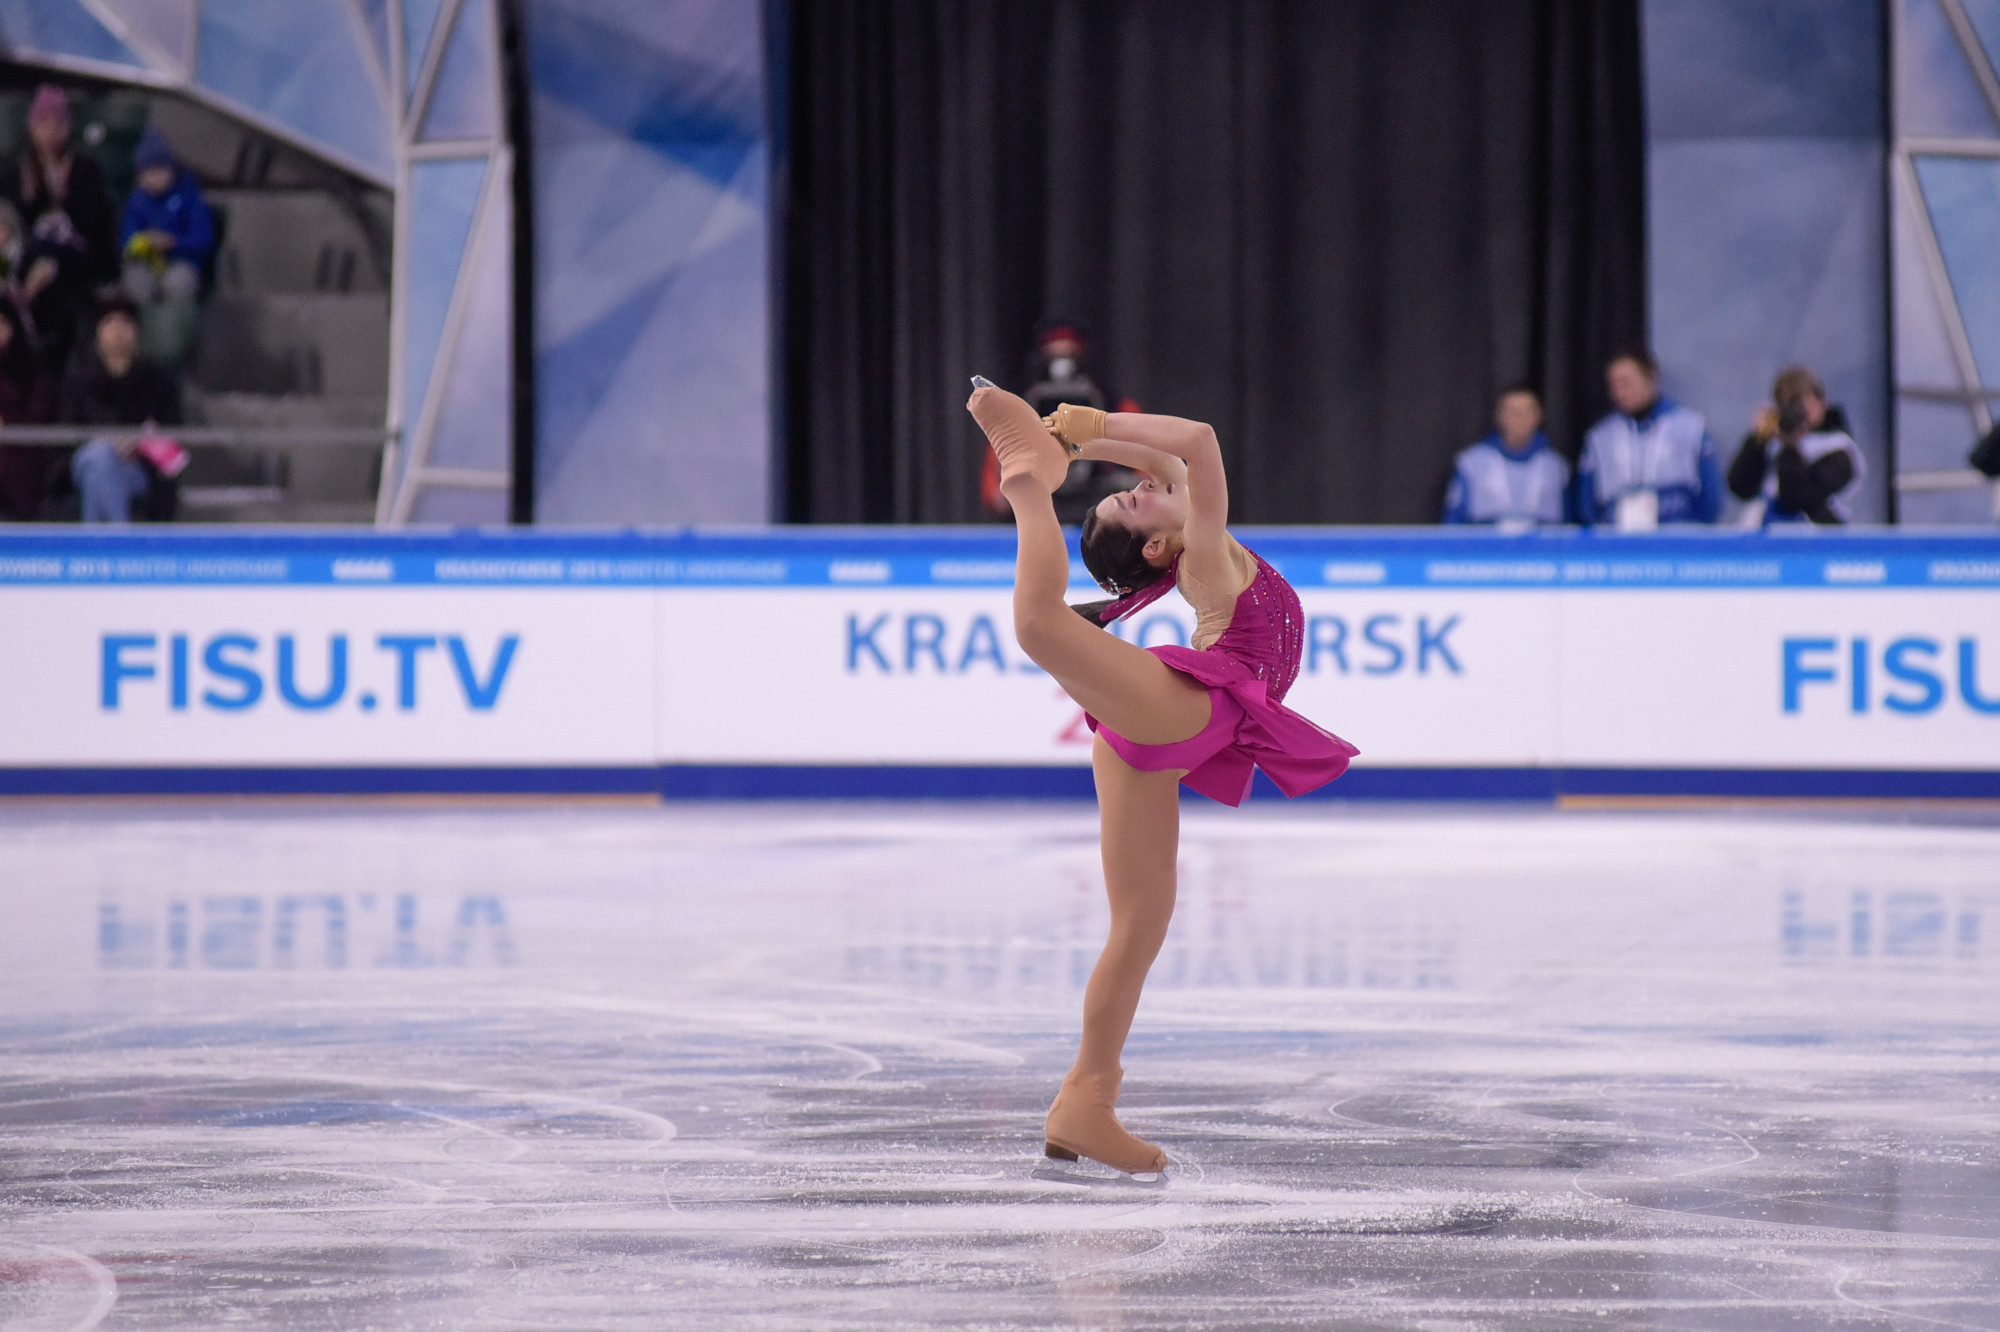 Japan's Mihara builds on lead to triumph in women's figure skating at Krasnoyarsk 2019